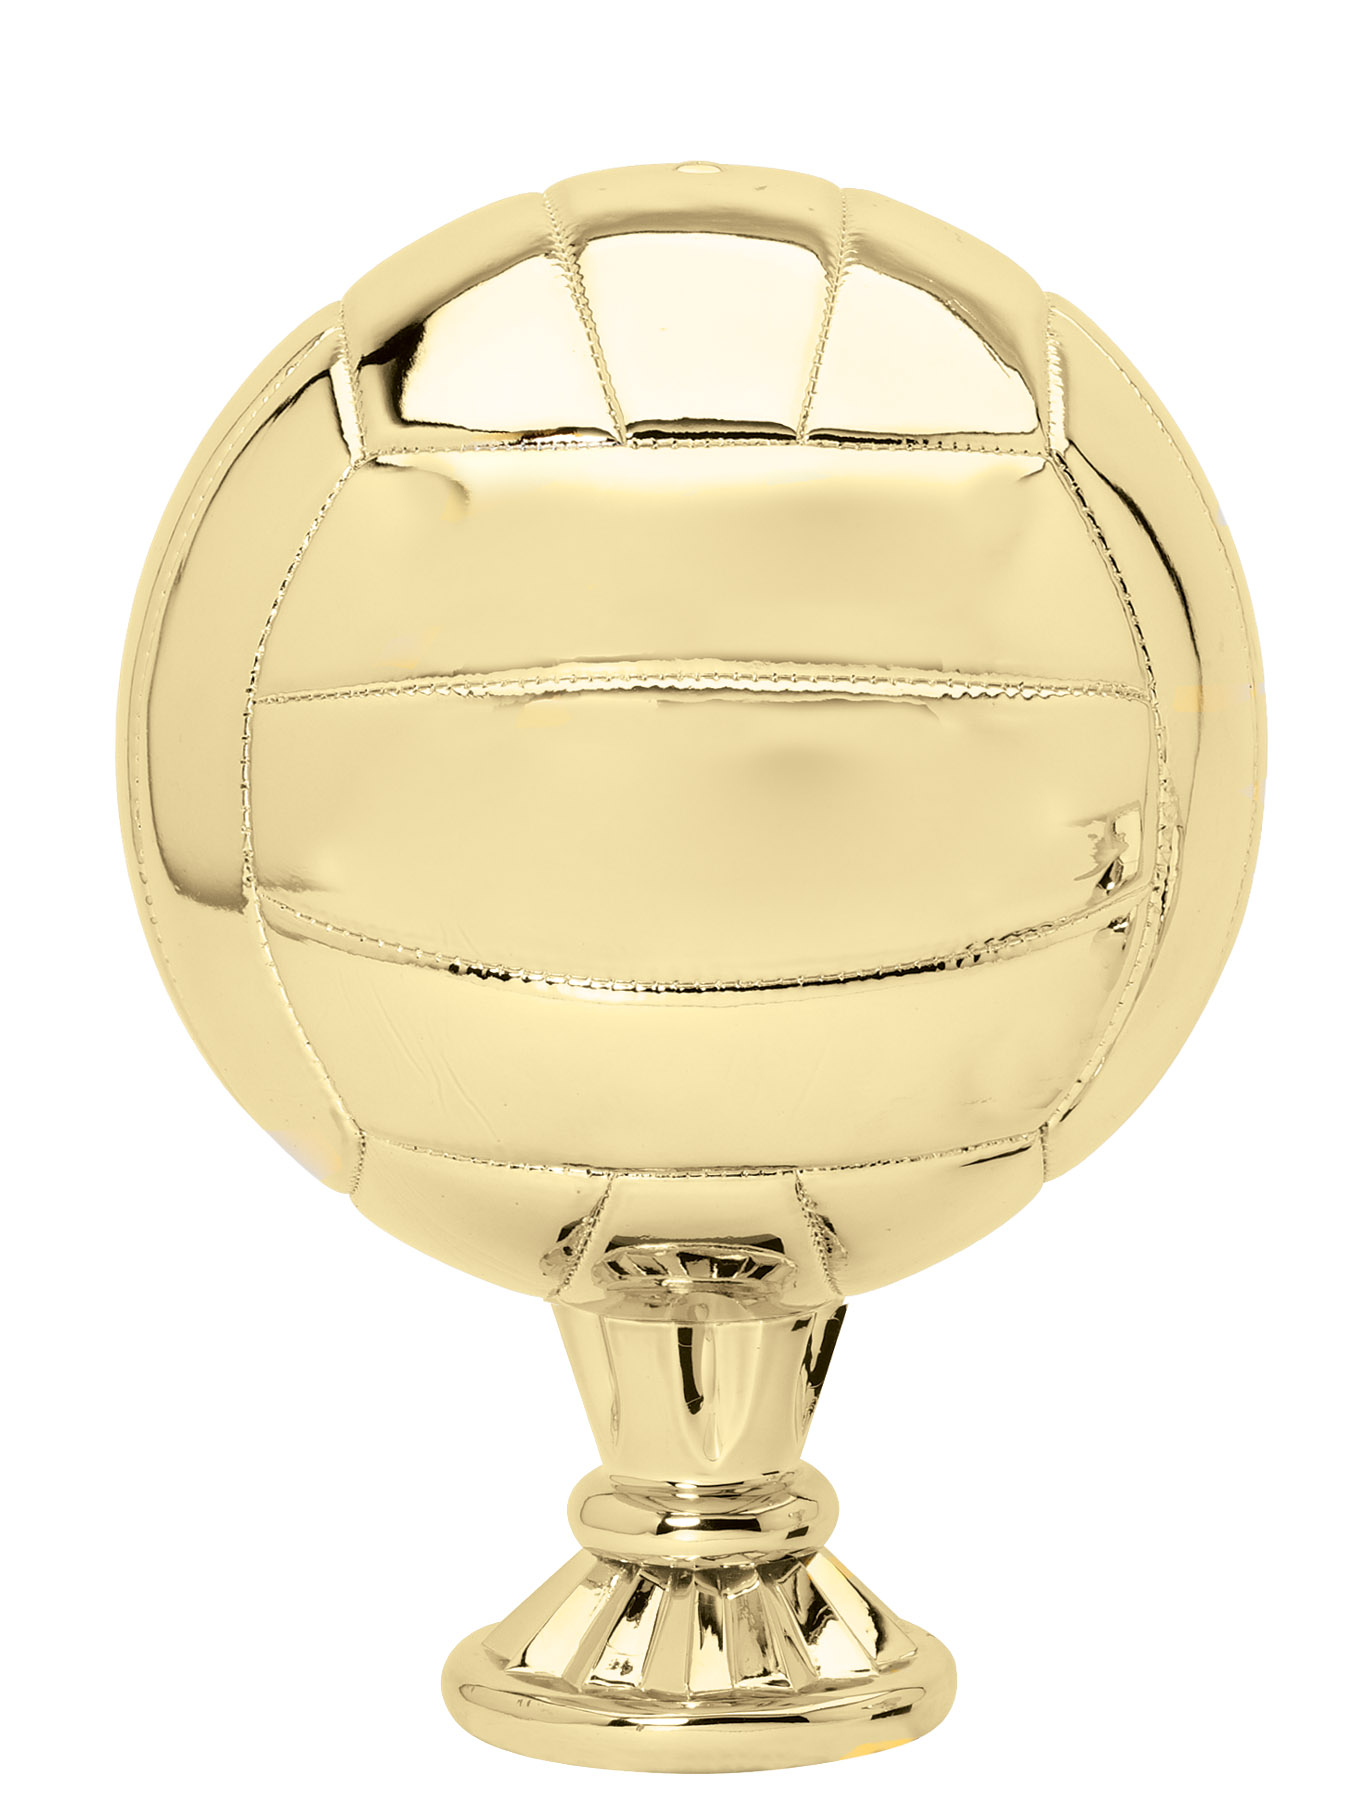 """Volleyball - Gold   RG3117 - 11.5"""" tall  Price = $109"""